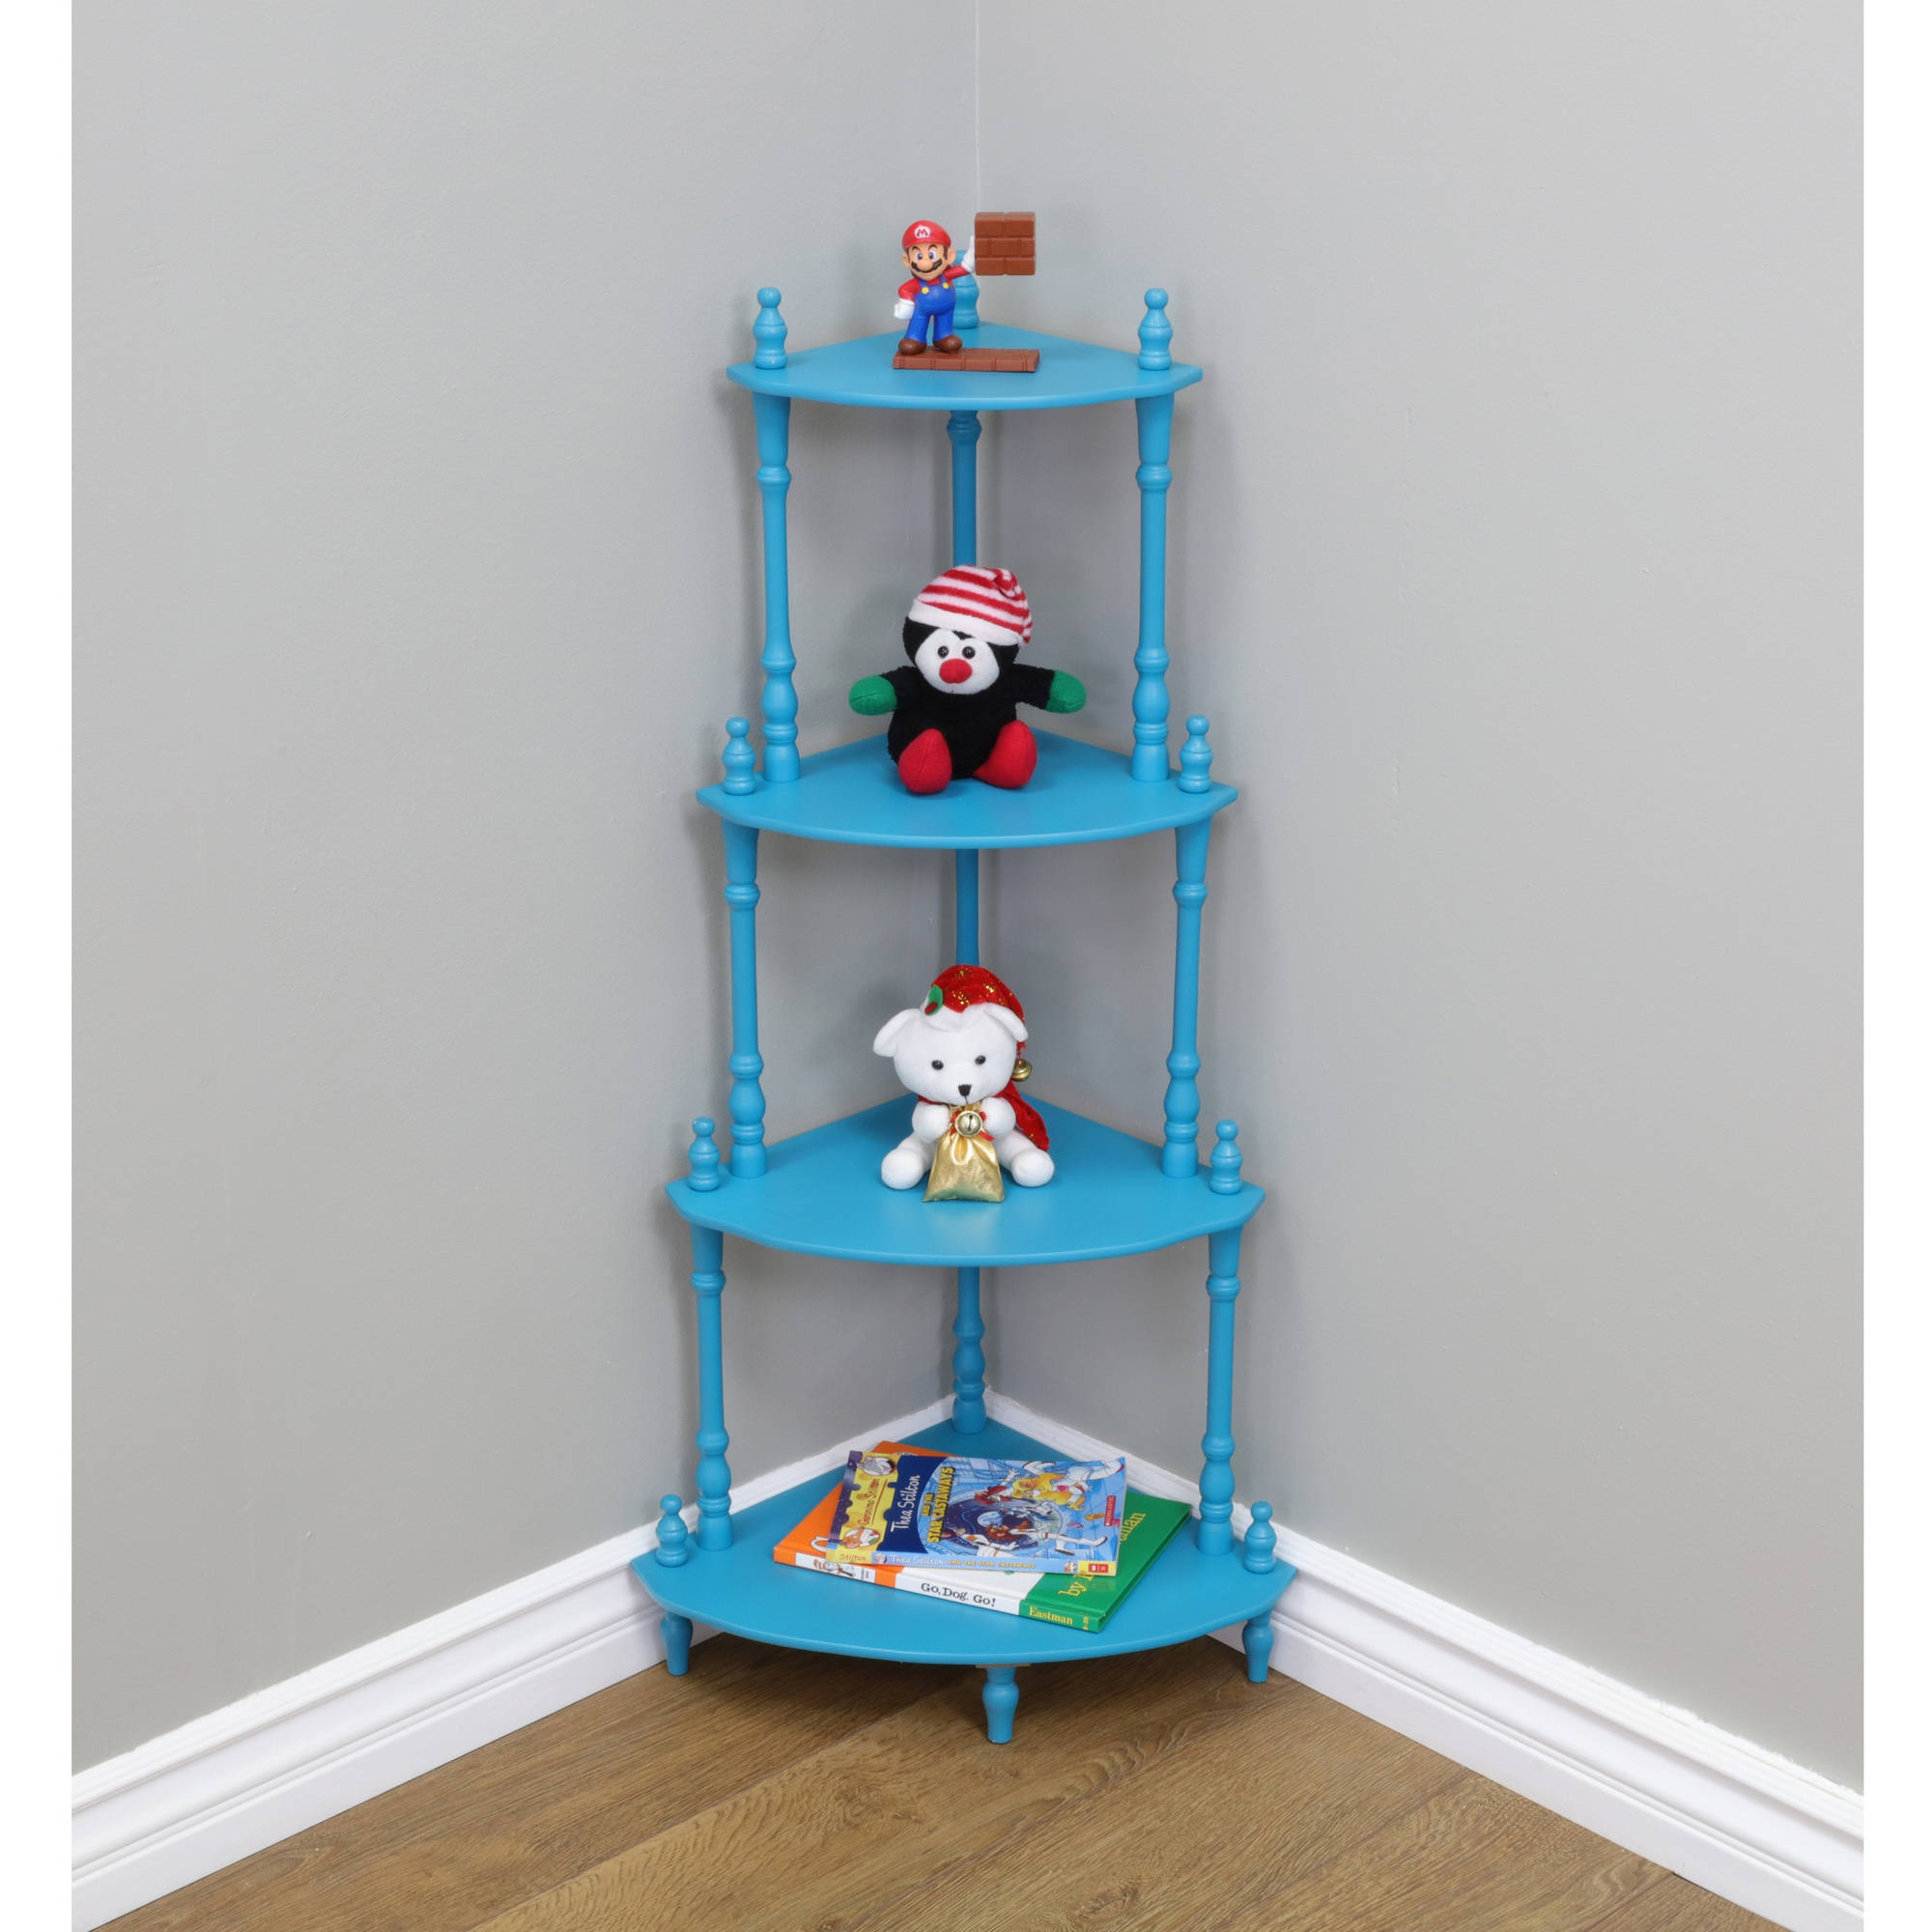 Home Craft Corner Shelves in Multiple Colors